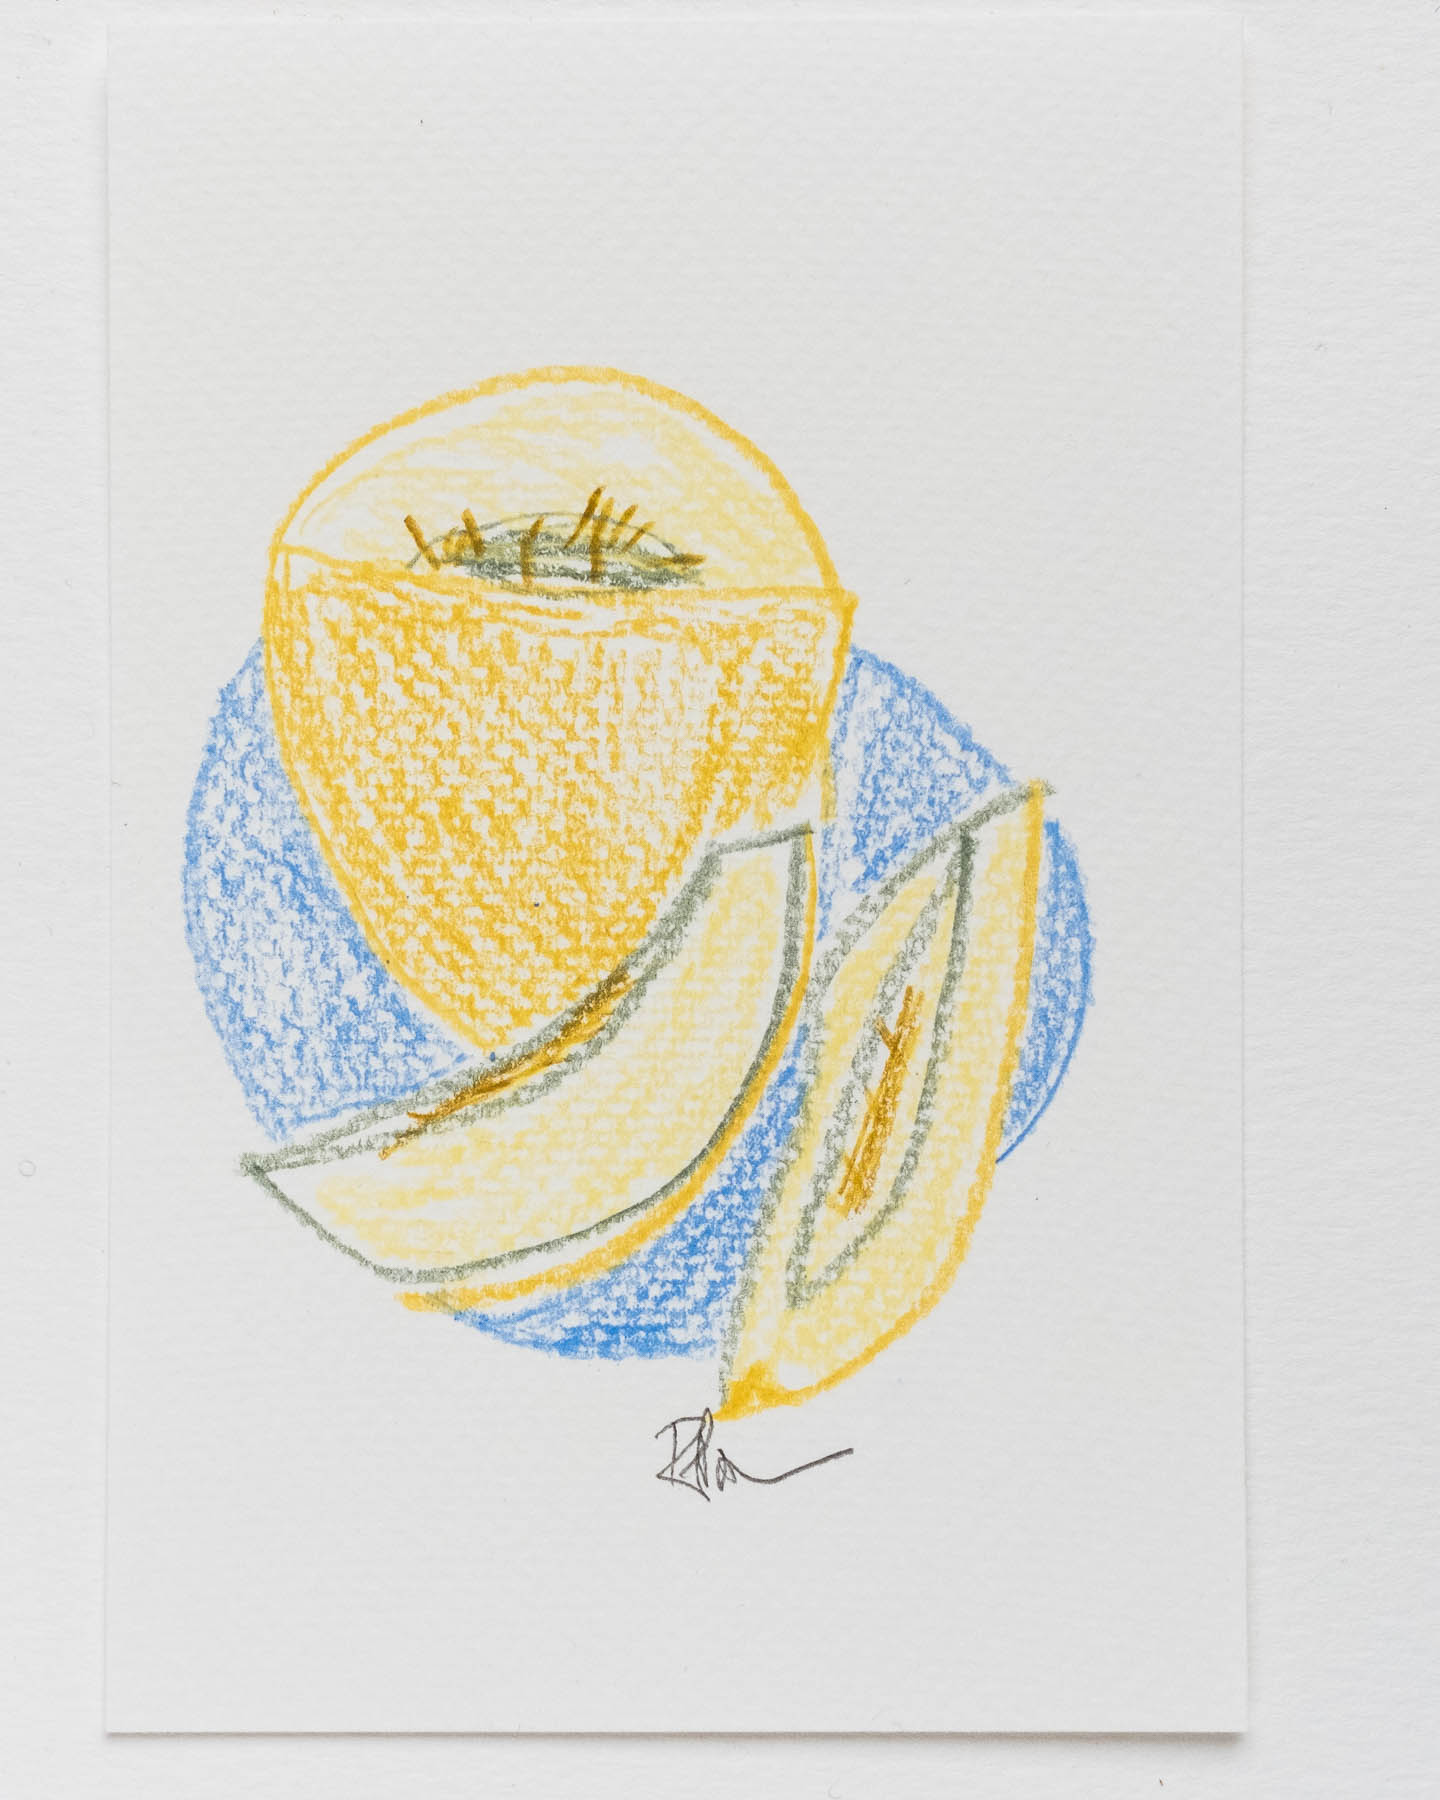 Pencil sketch of slices of melon on a blue plate. Postcard size.